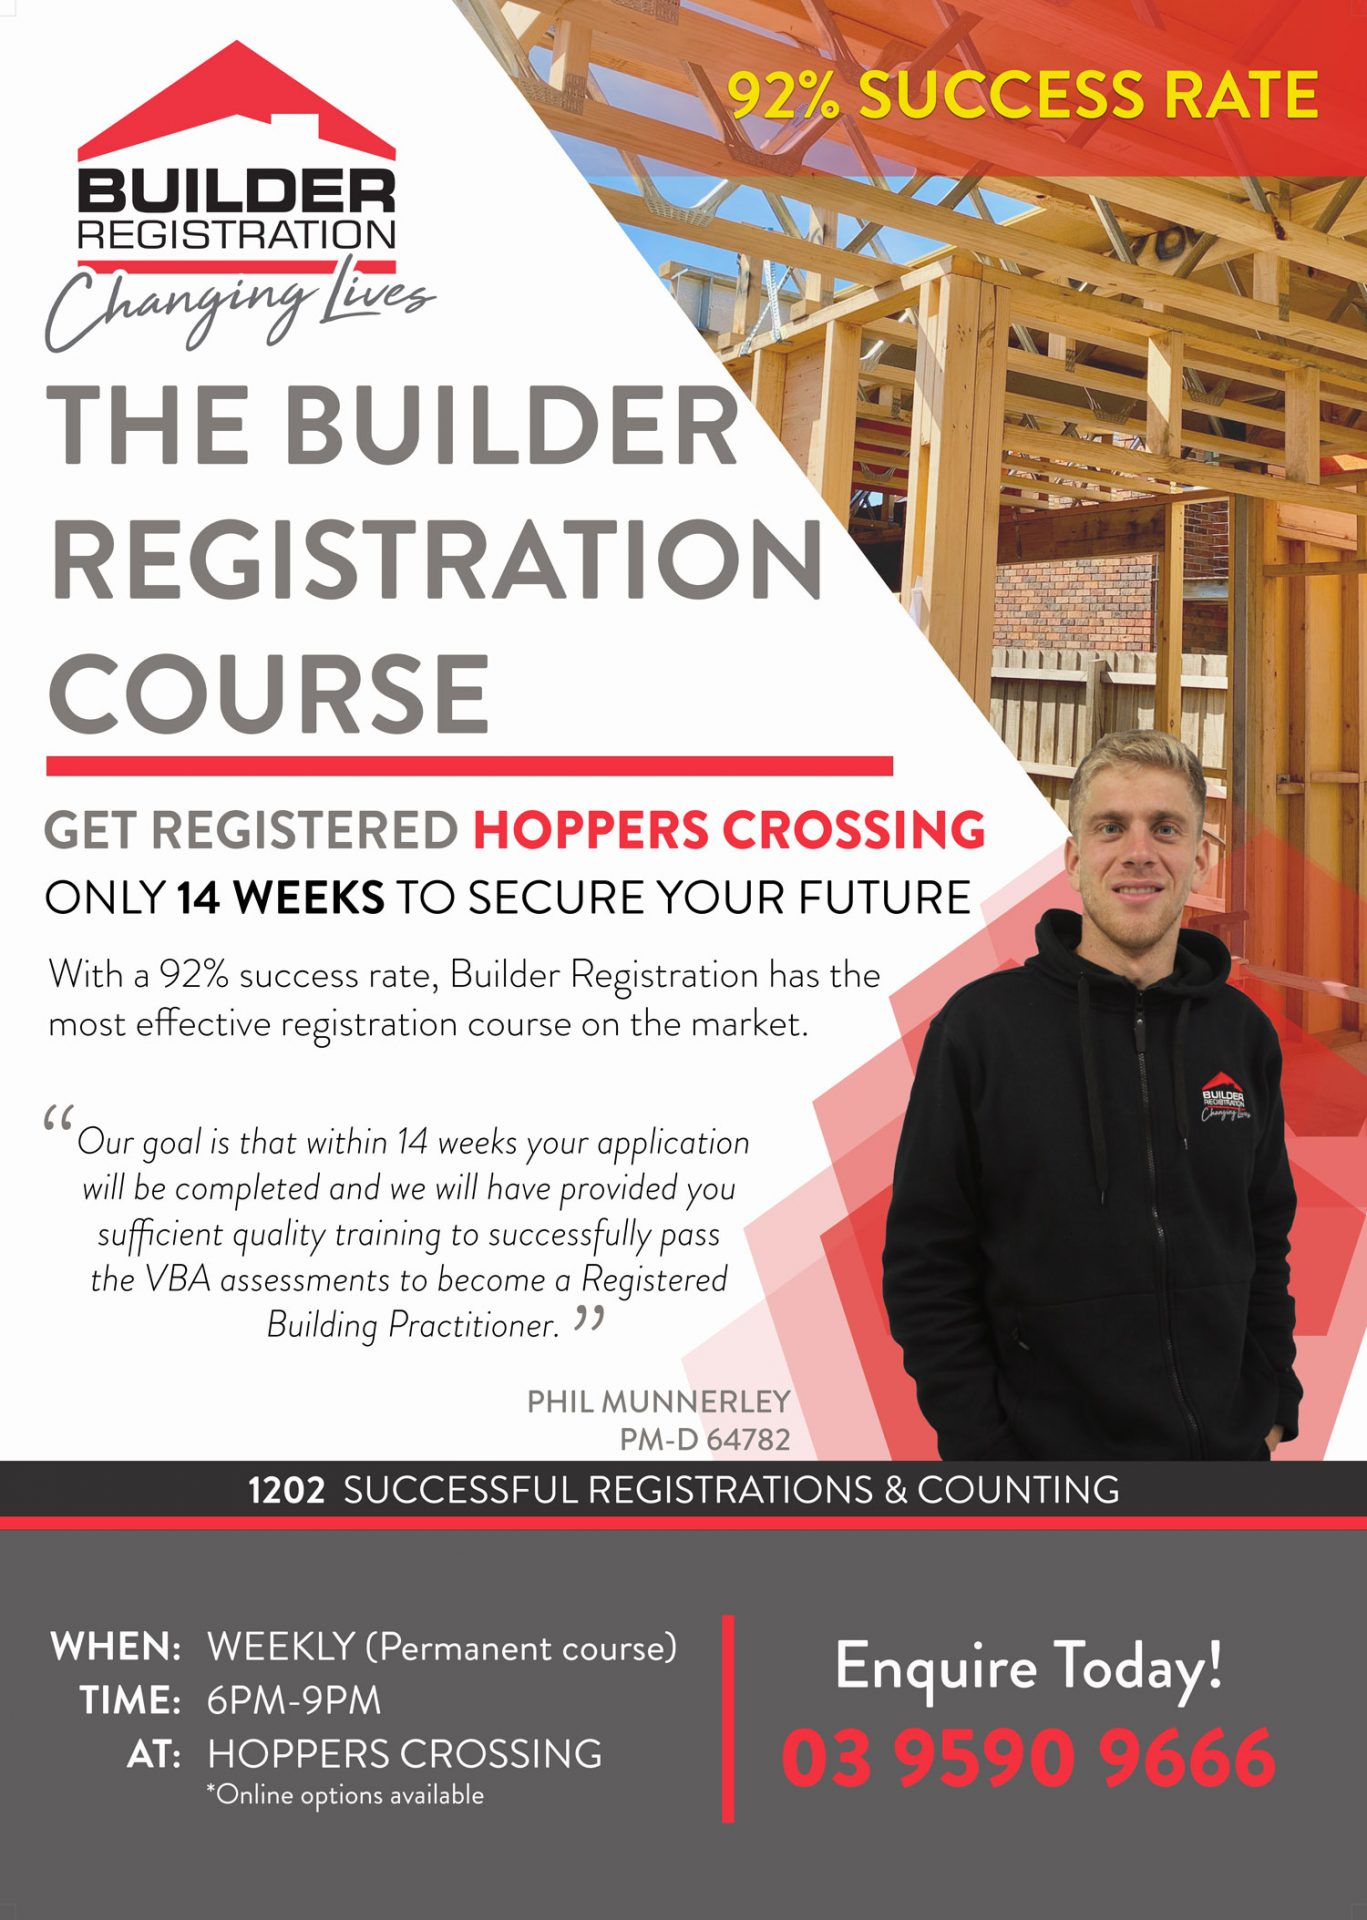 Builders Registration Course Hoppers-Crossing